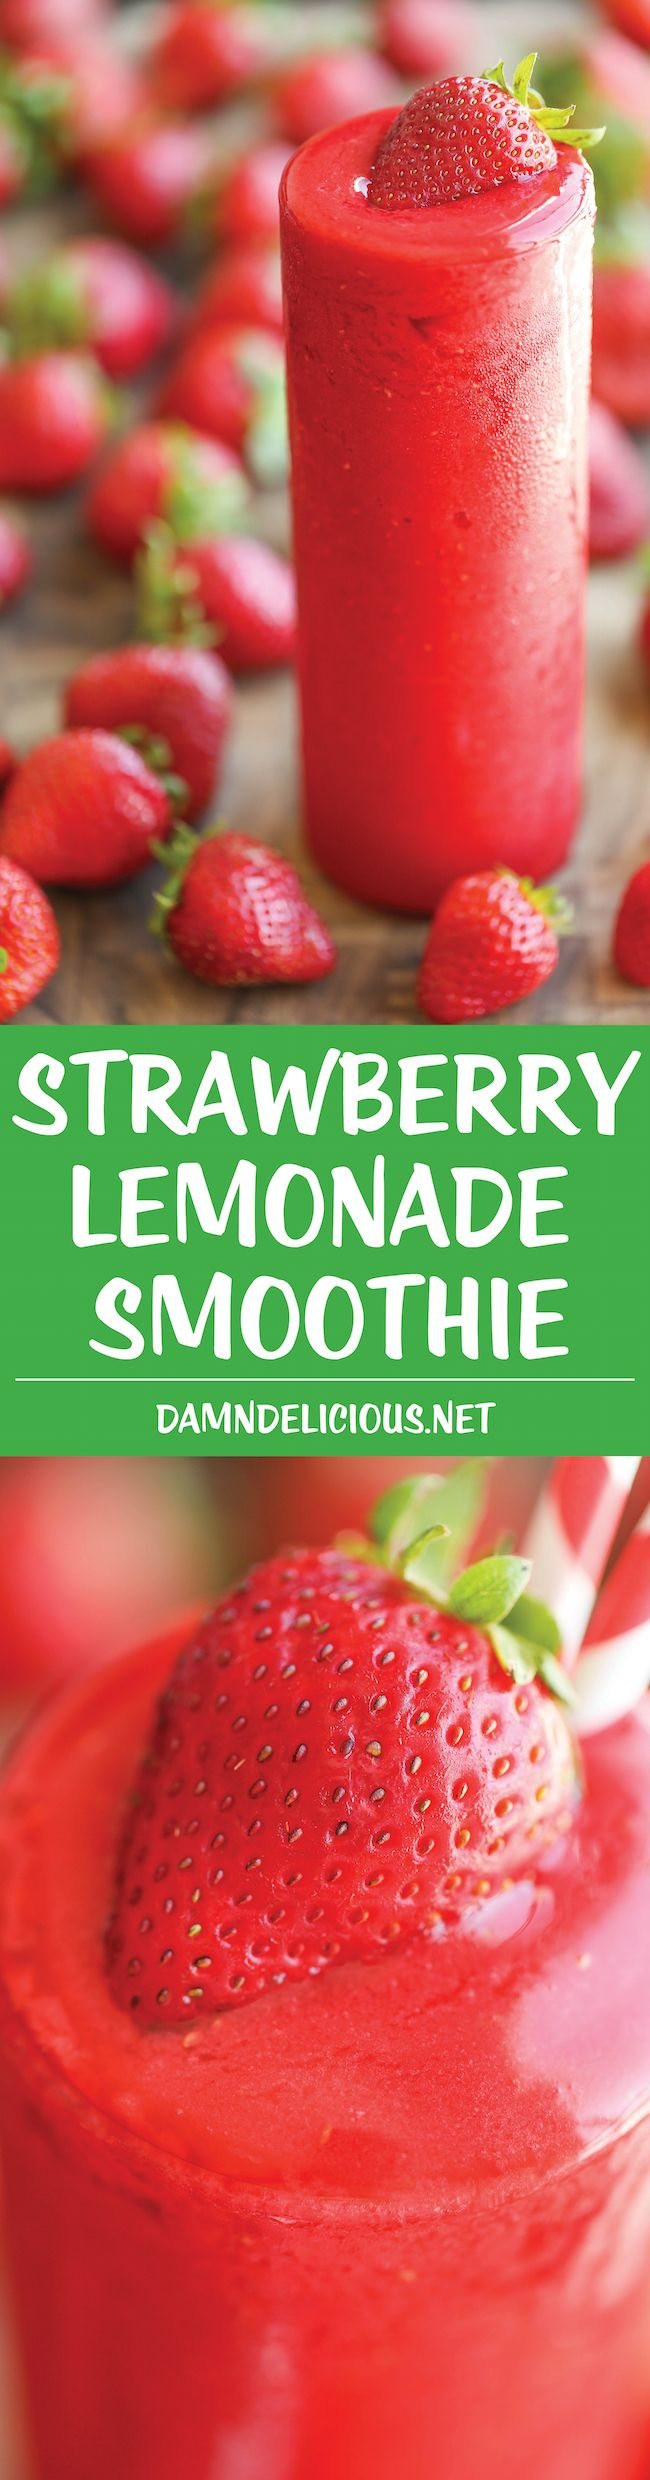 ~~Strawberry Lemonade Smoothie | Sweet, tangy and wonderfully refreshing with just 4 ingredients, made completely from scratch. No frozen concentrate here! | Damn Delicious~~